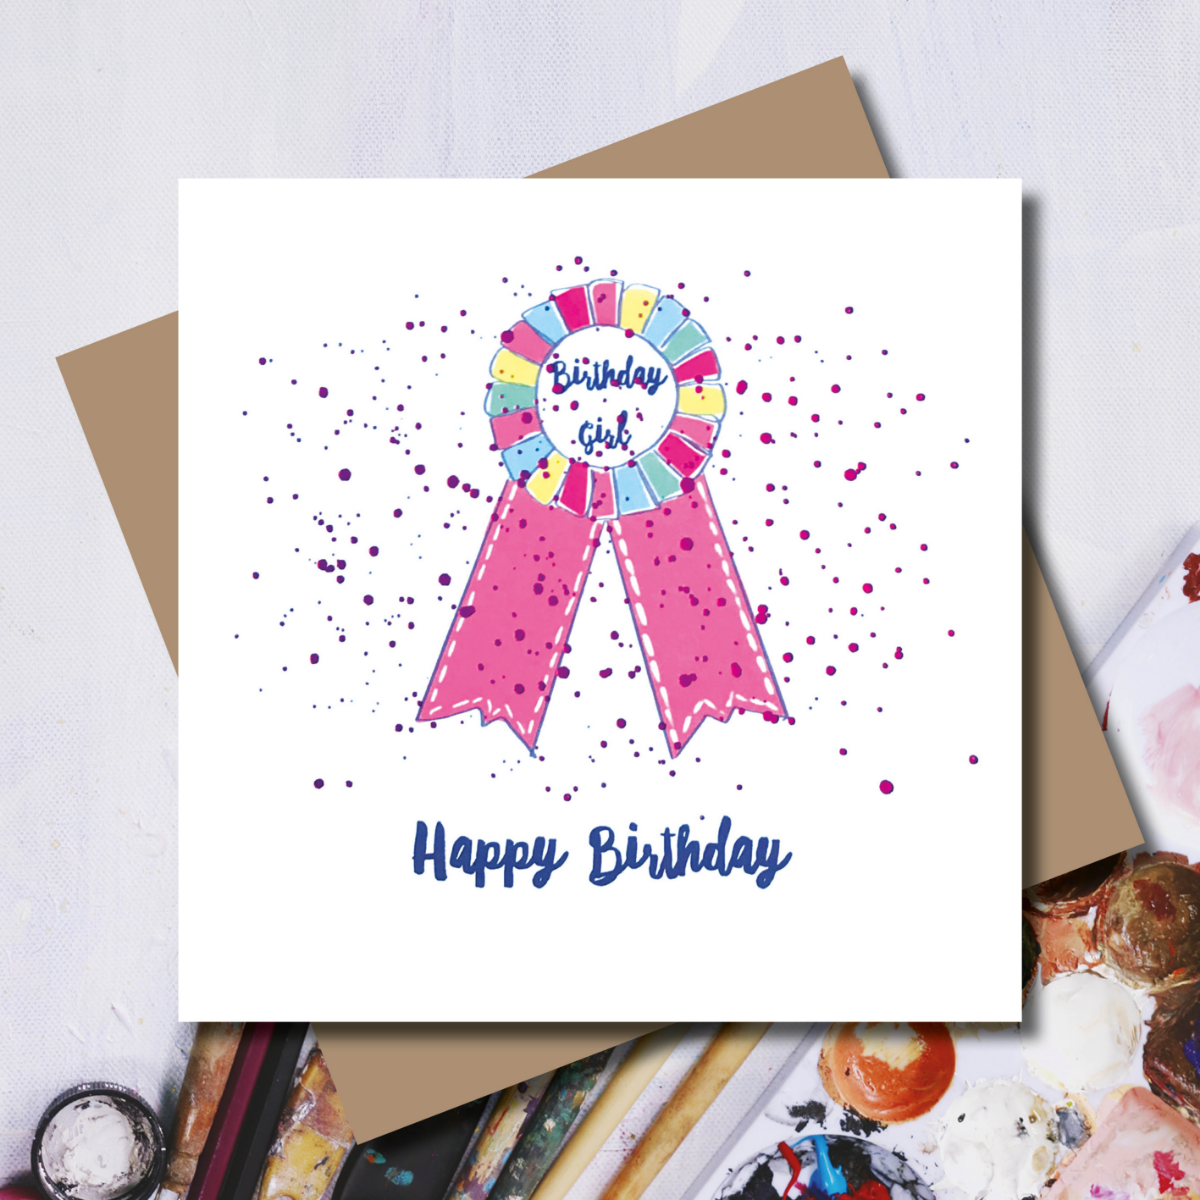 Happy Birthday - Birthday Girl Rosette Card